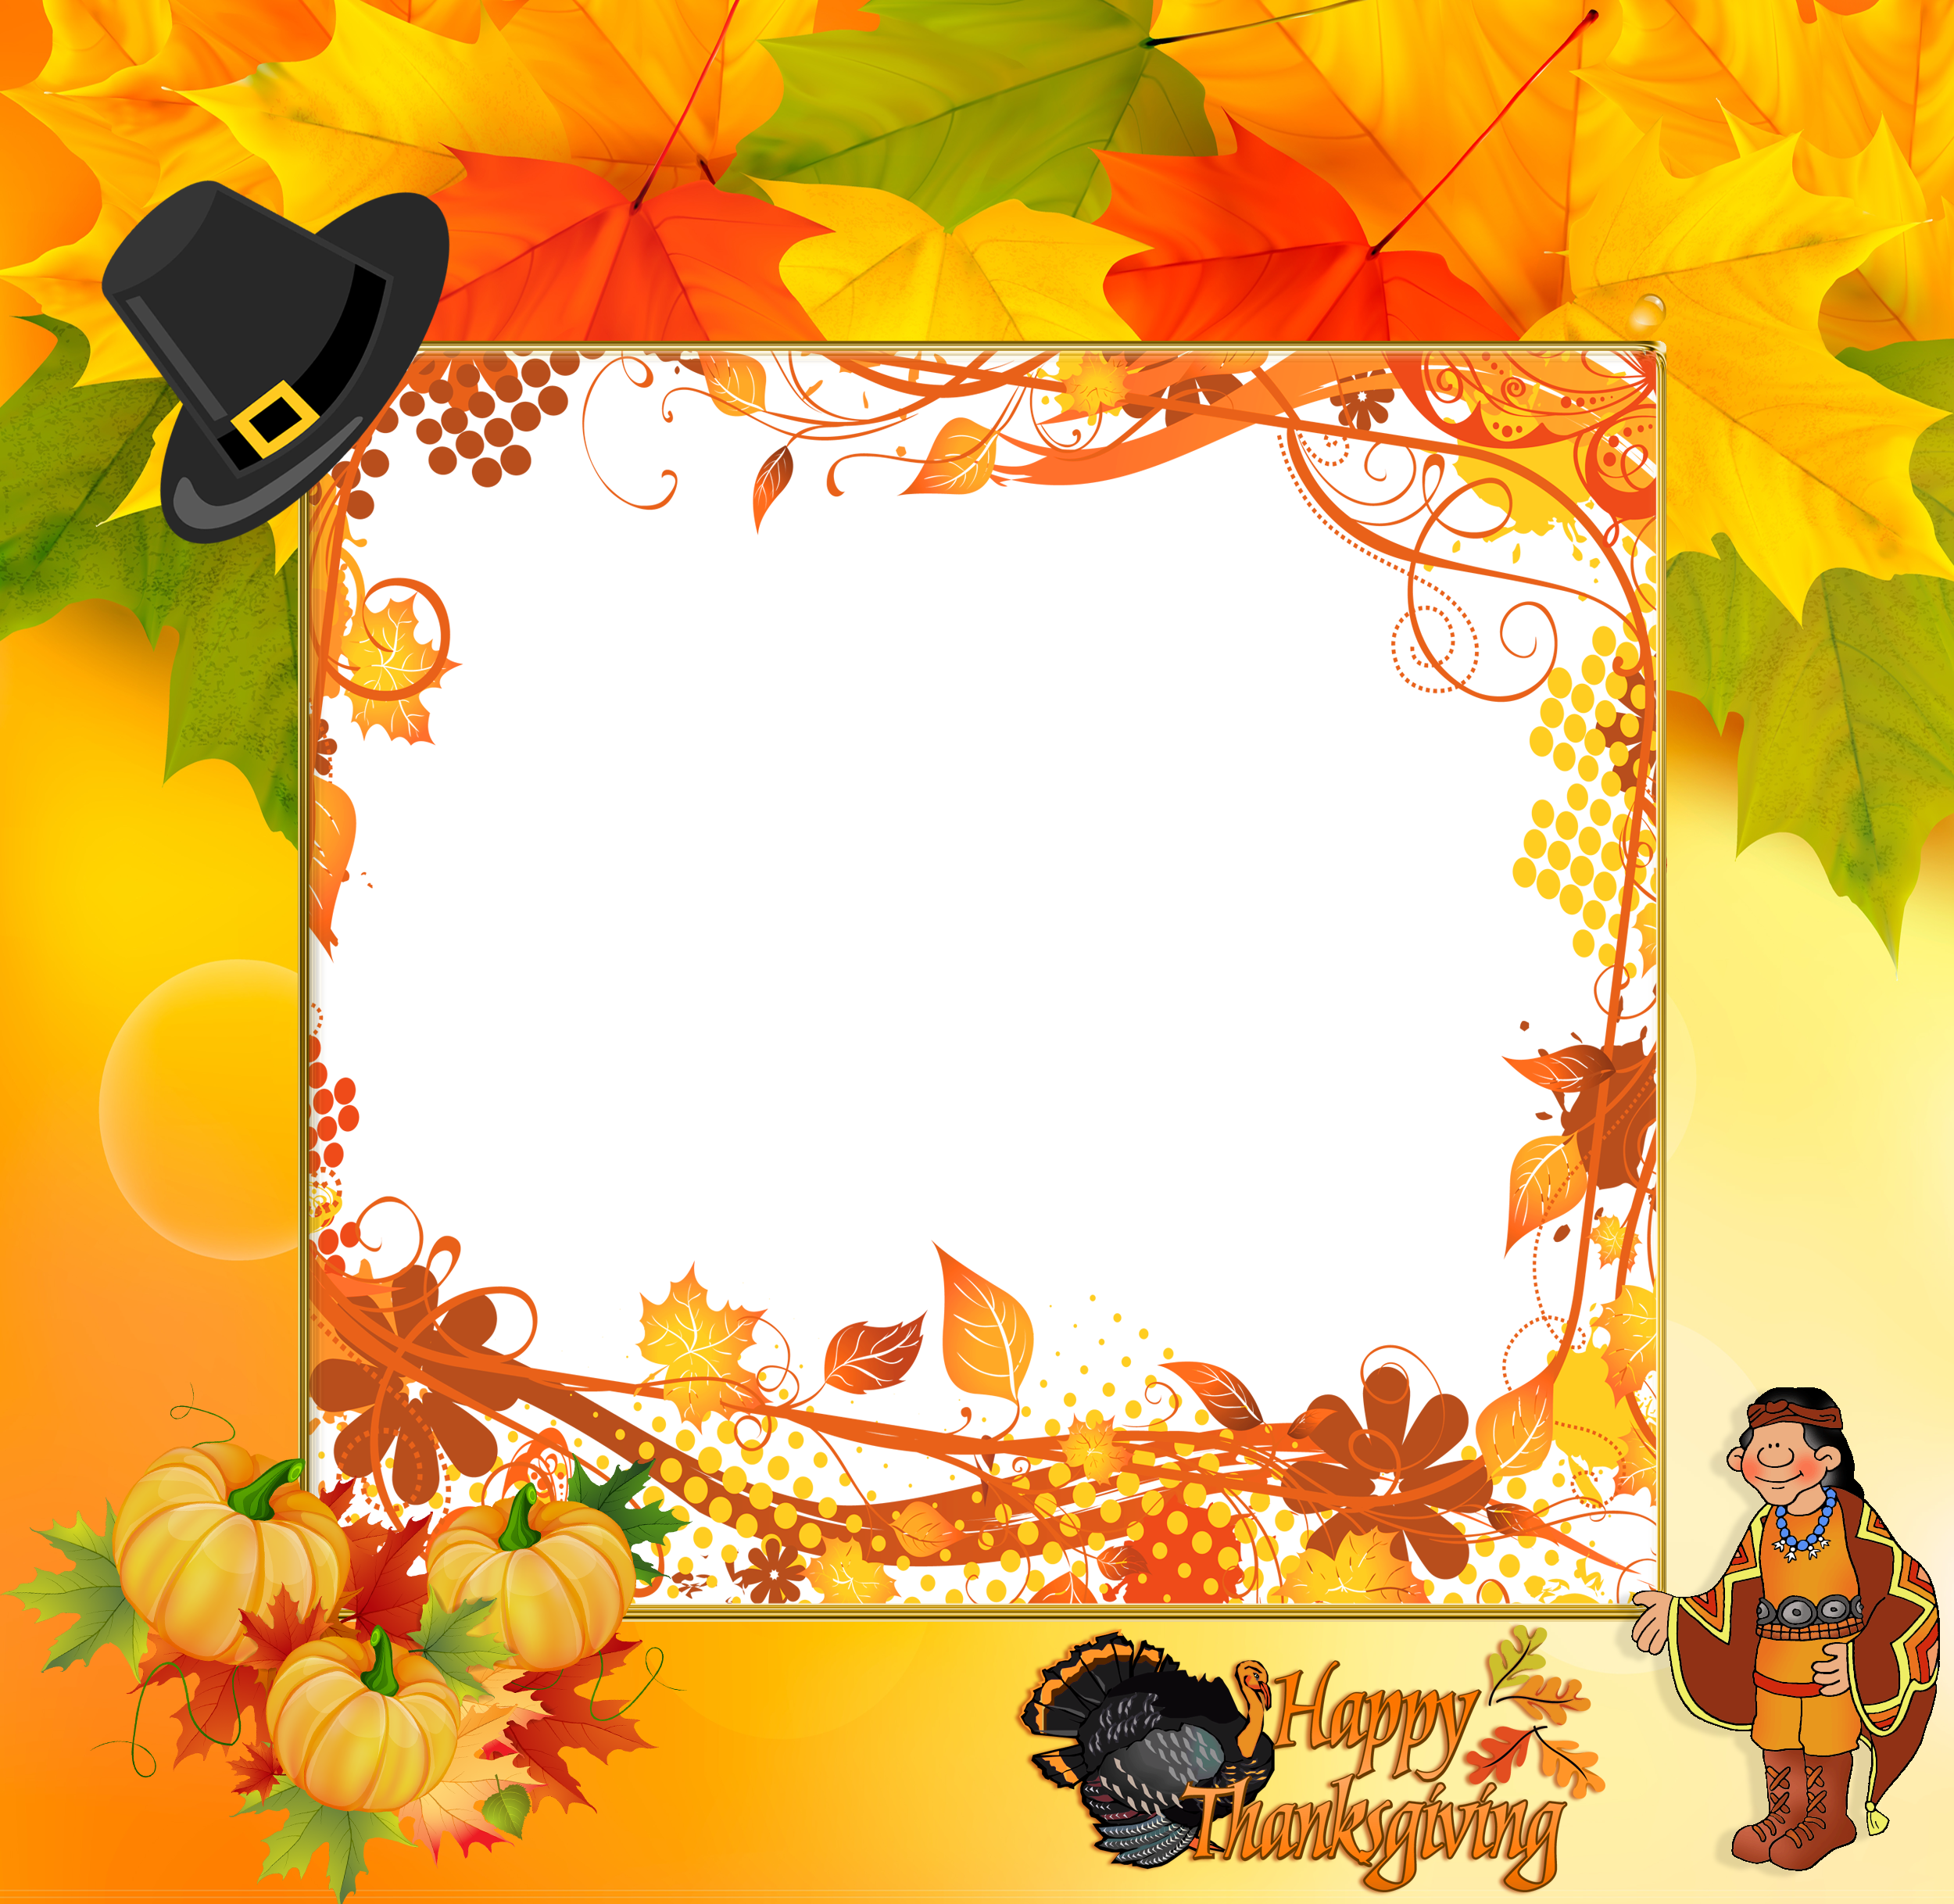 Transparent_Happy_Thanksgiving_Frame.png?m=1410362160.